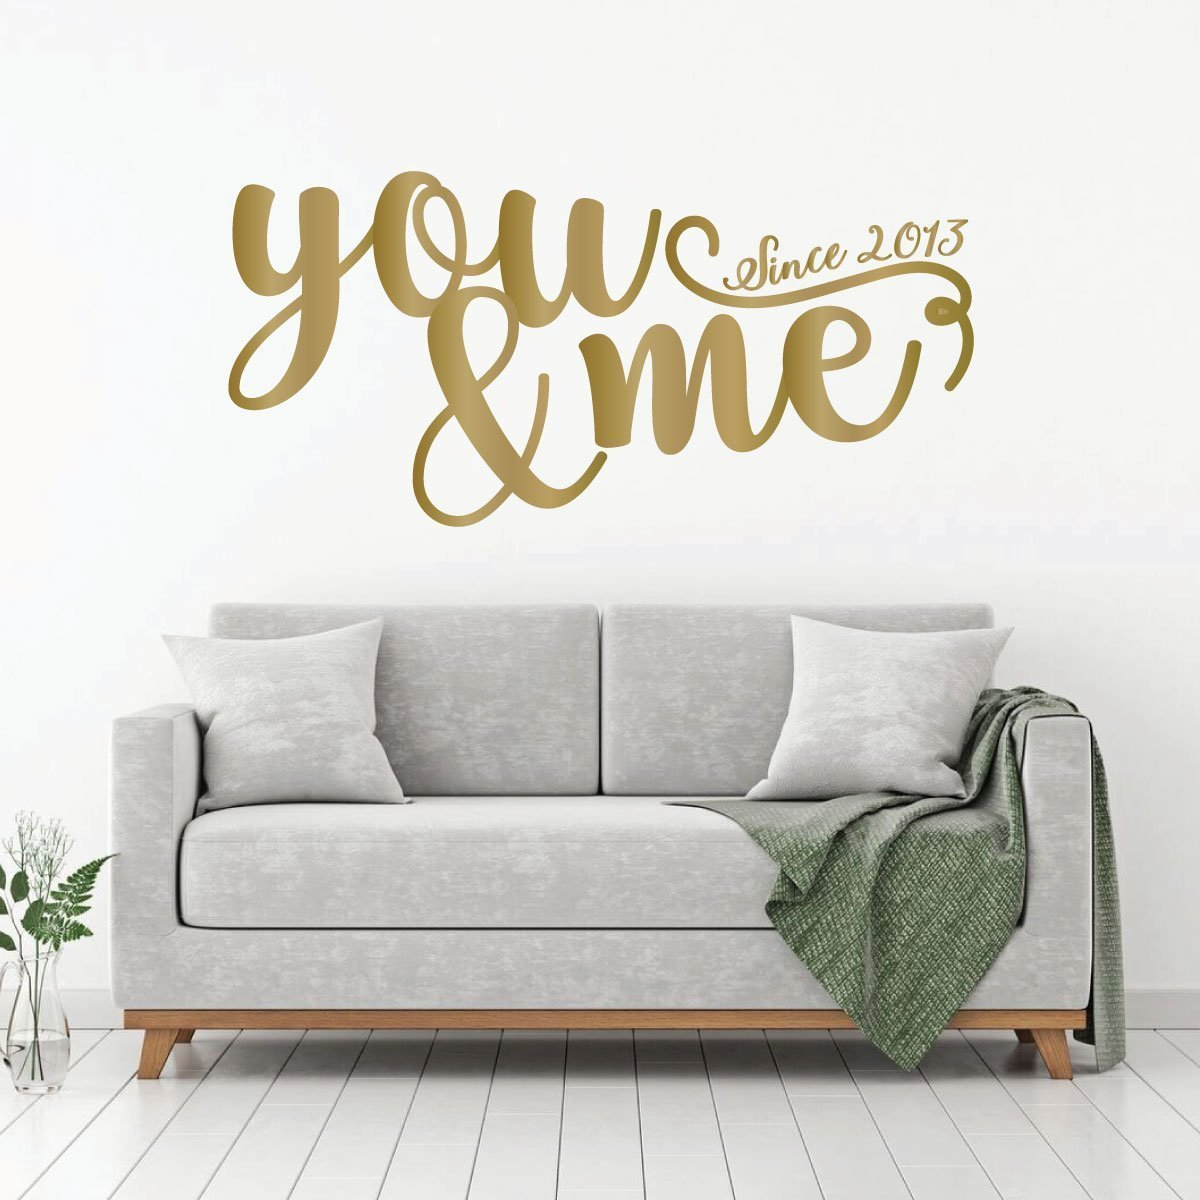 Quote Bedroom Couples Anniversary or Wedding Gift Decal -You And Me Since Kitchen Vinyl Decor for Living Room